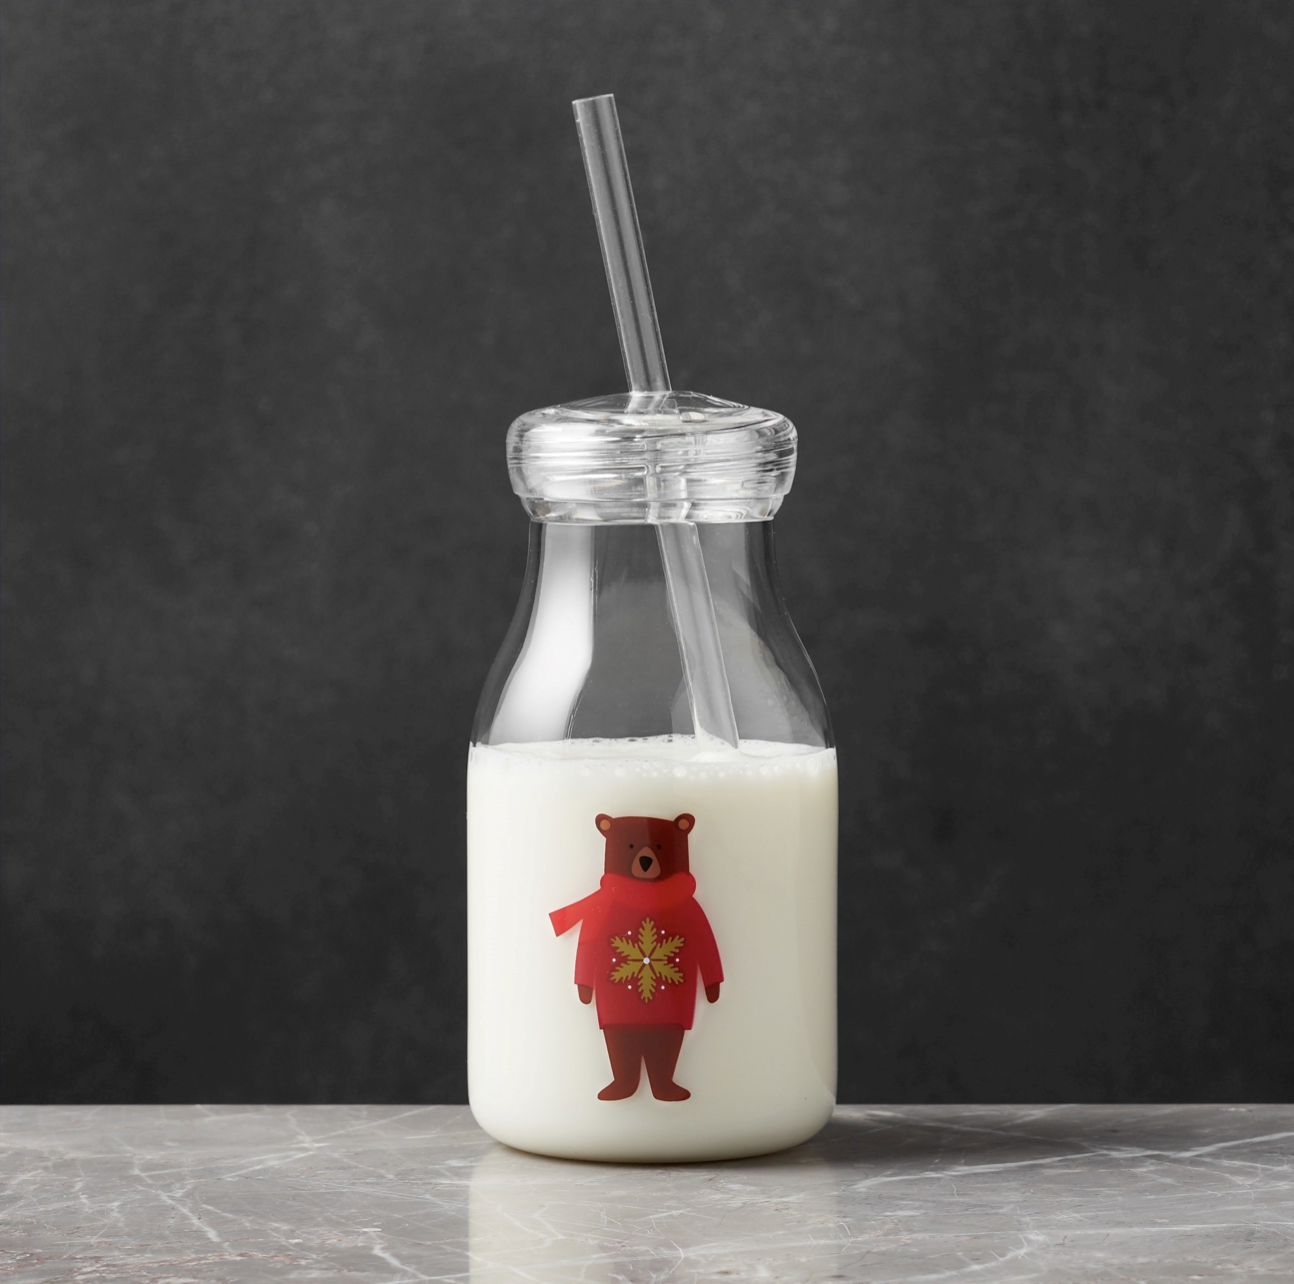 Crate and Barrel Holiday Bear Acrylic Milk Bottle with Milk